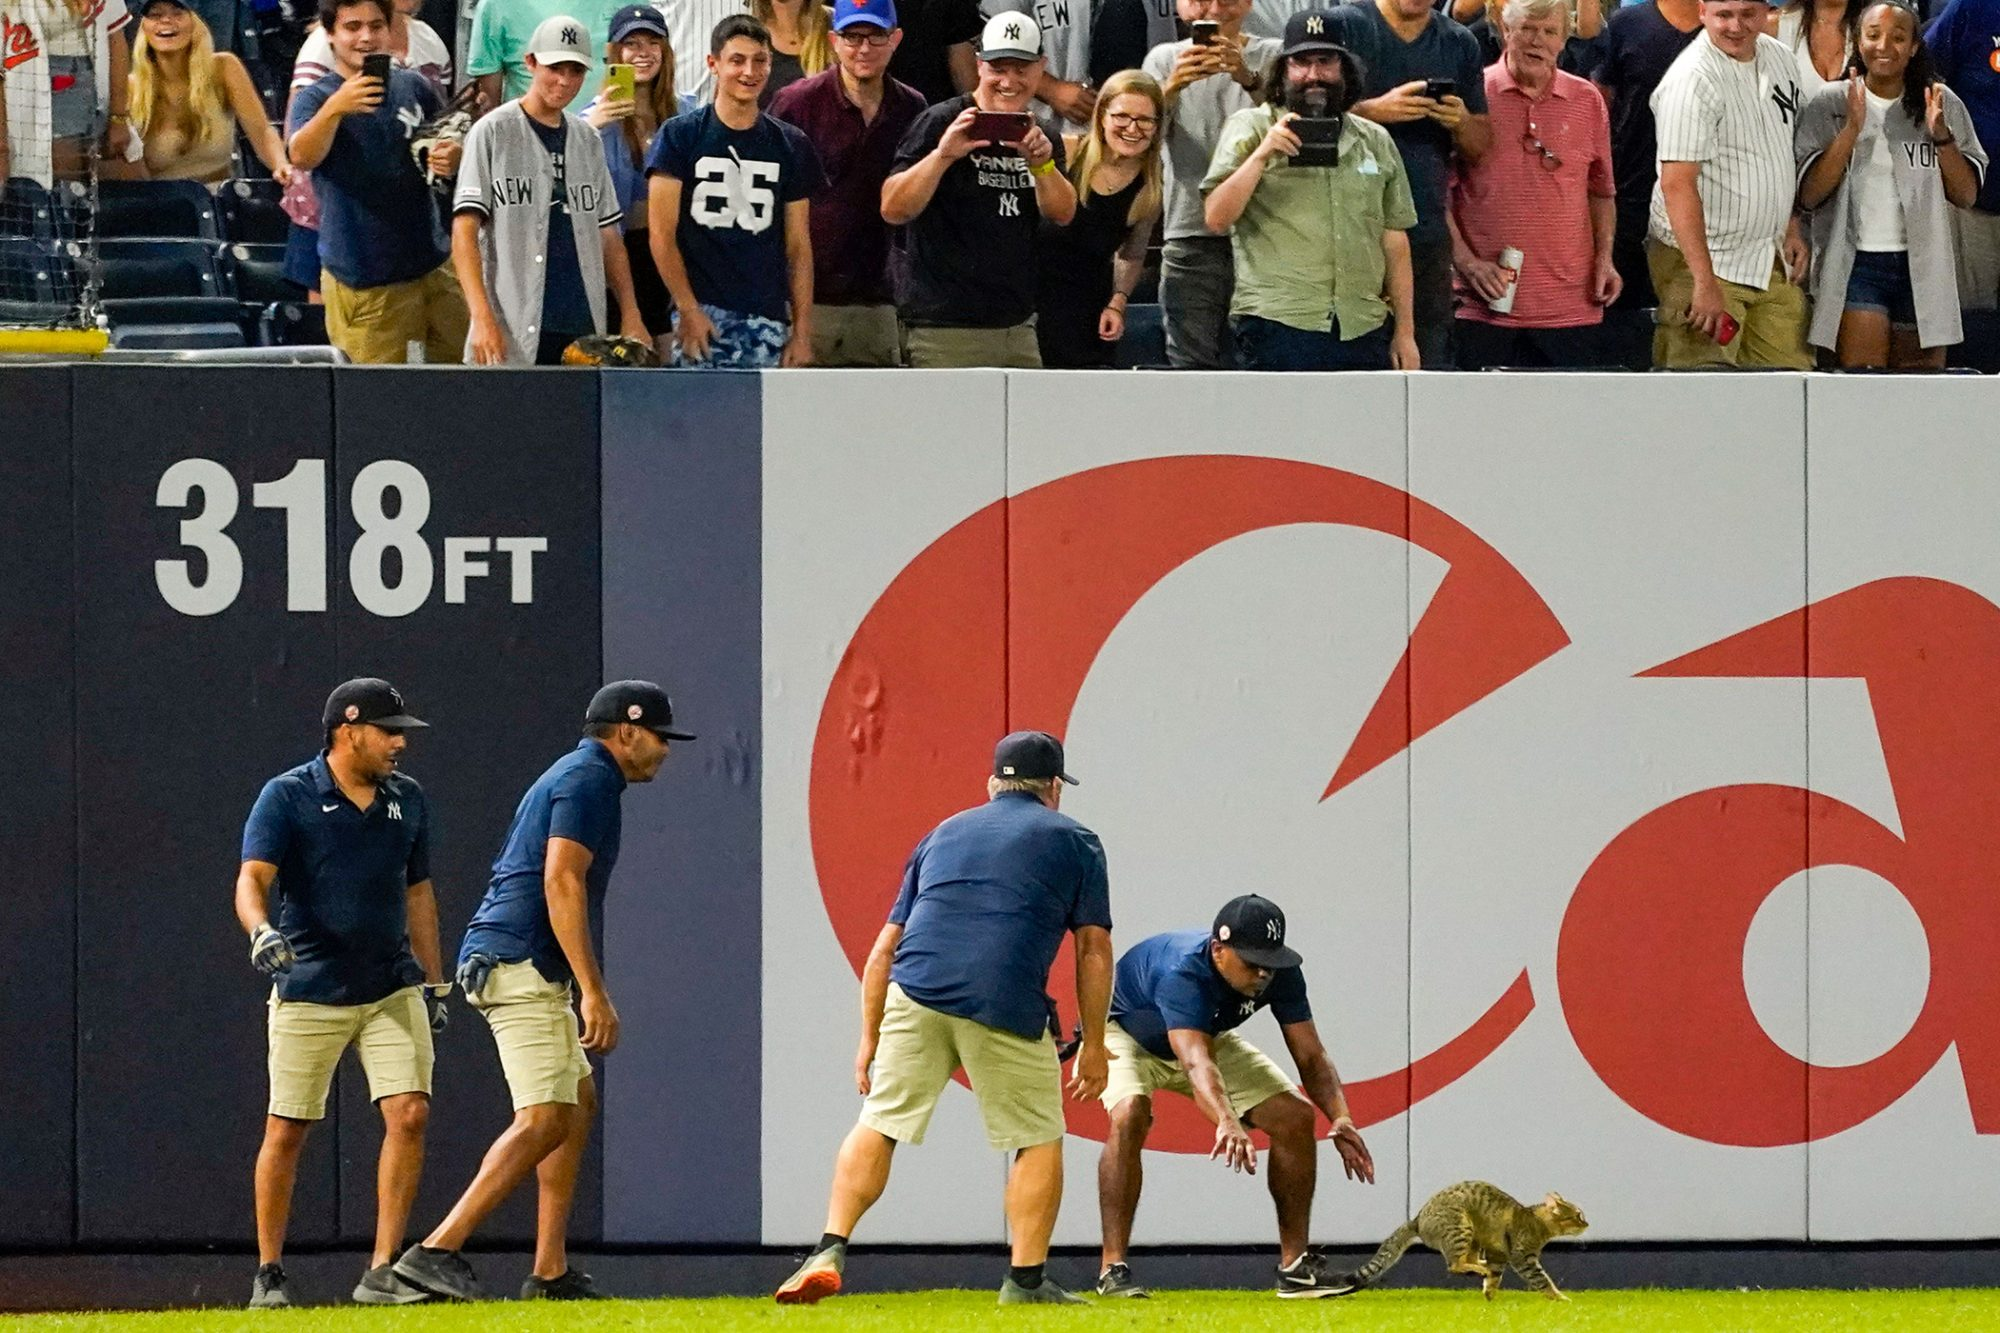 Yankee Stadium grounds crew members try to catch a cat that entered the field in the eighth inning of a baseball game between the New York Yankees and the Baltimore Orioles, in New York